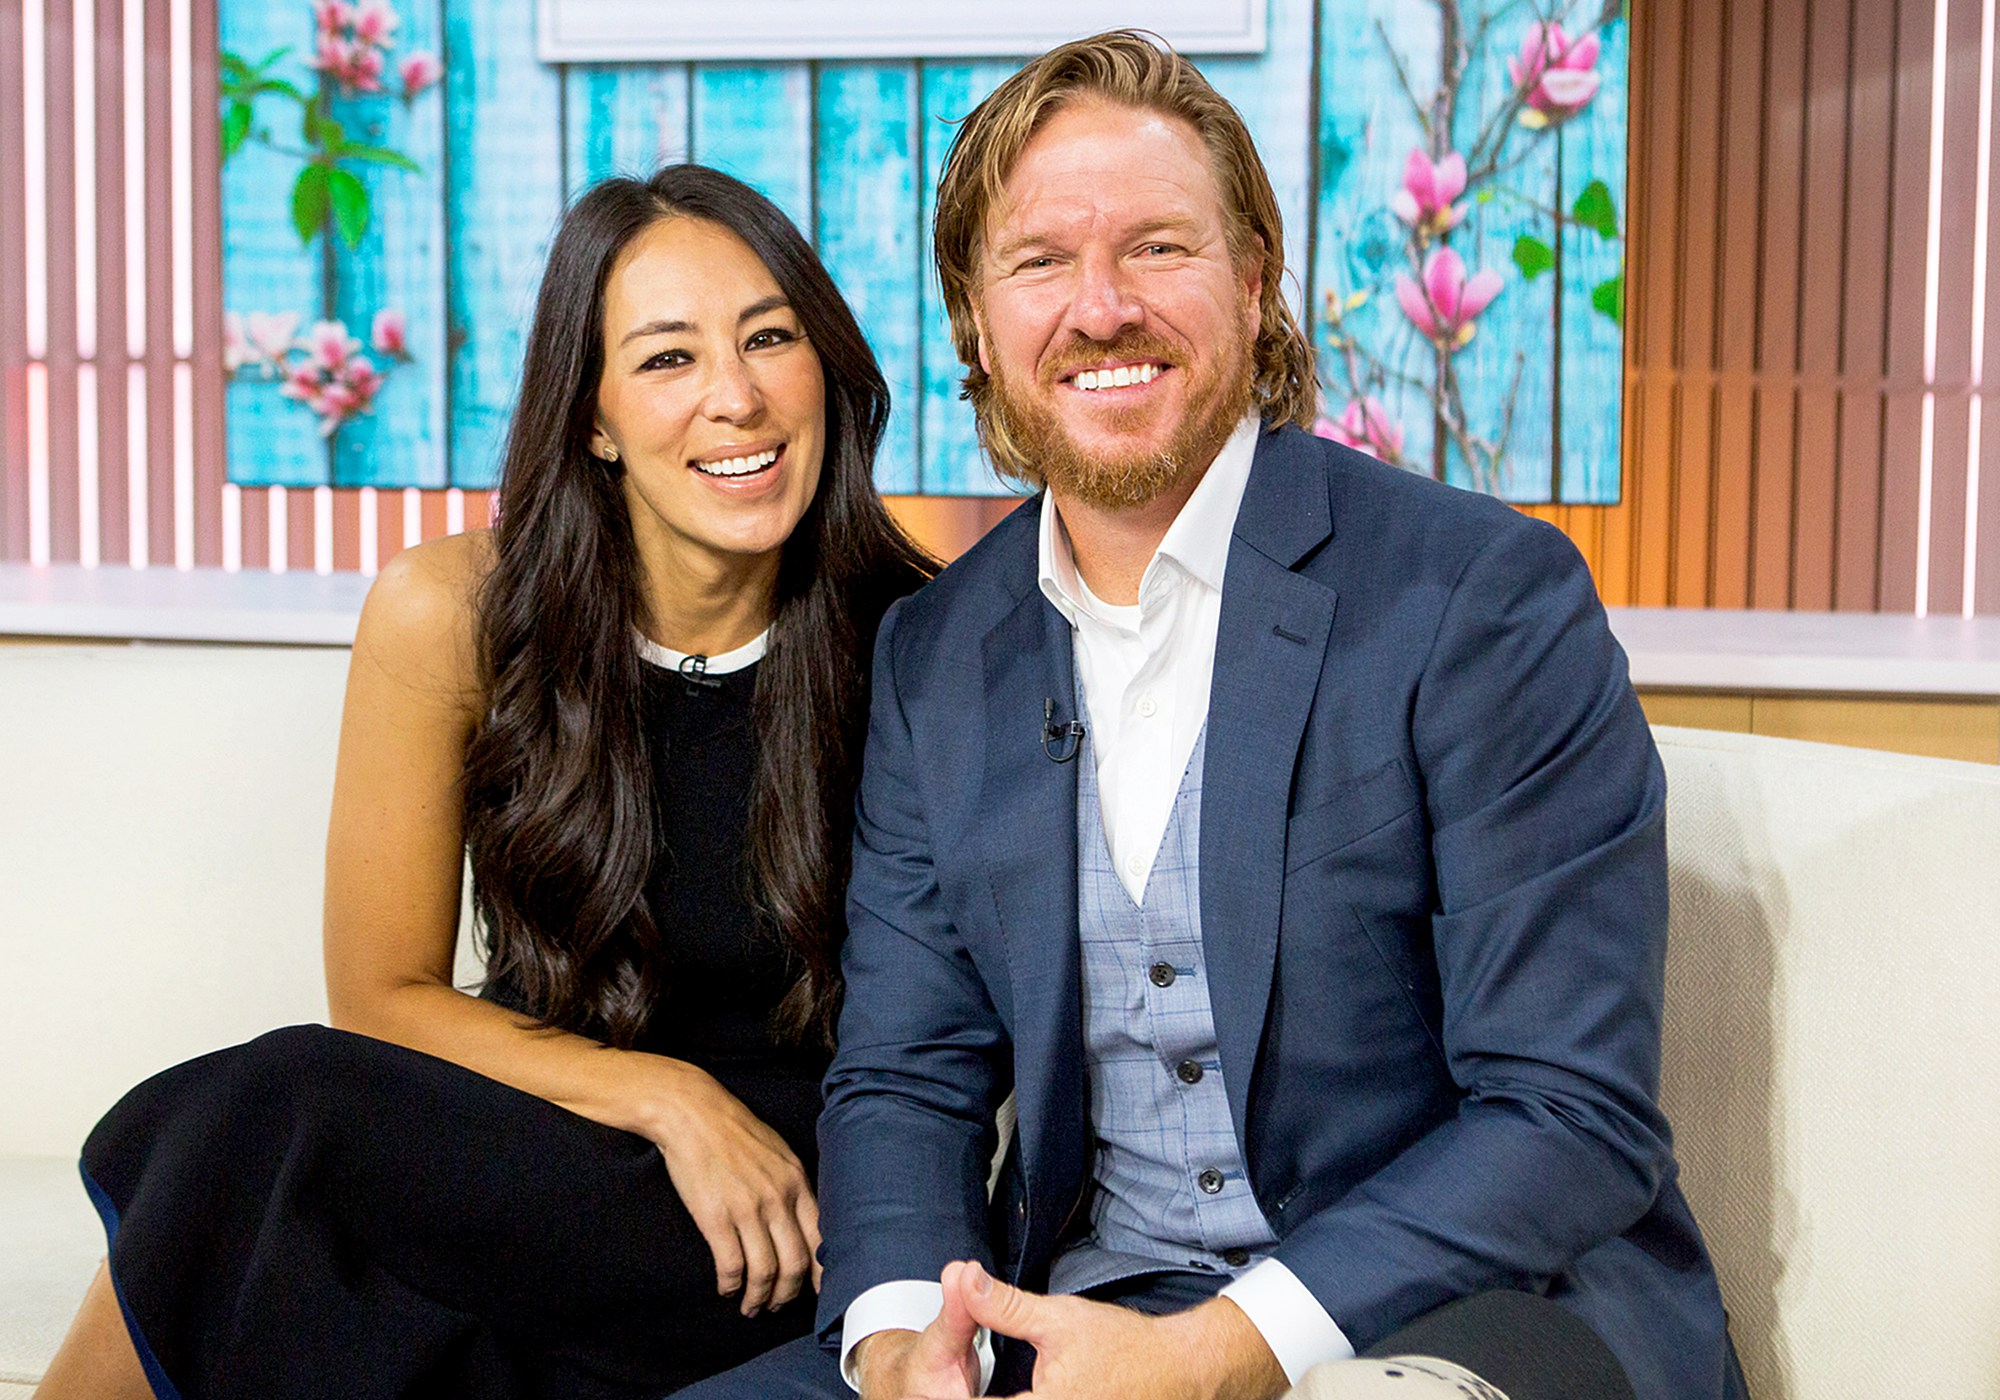 Chip and Joanna Gaines during Today show on October 17, 2017.